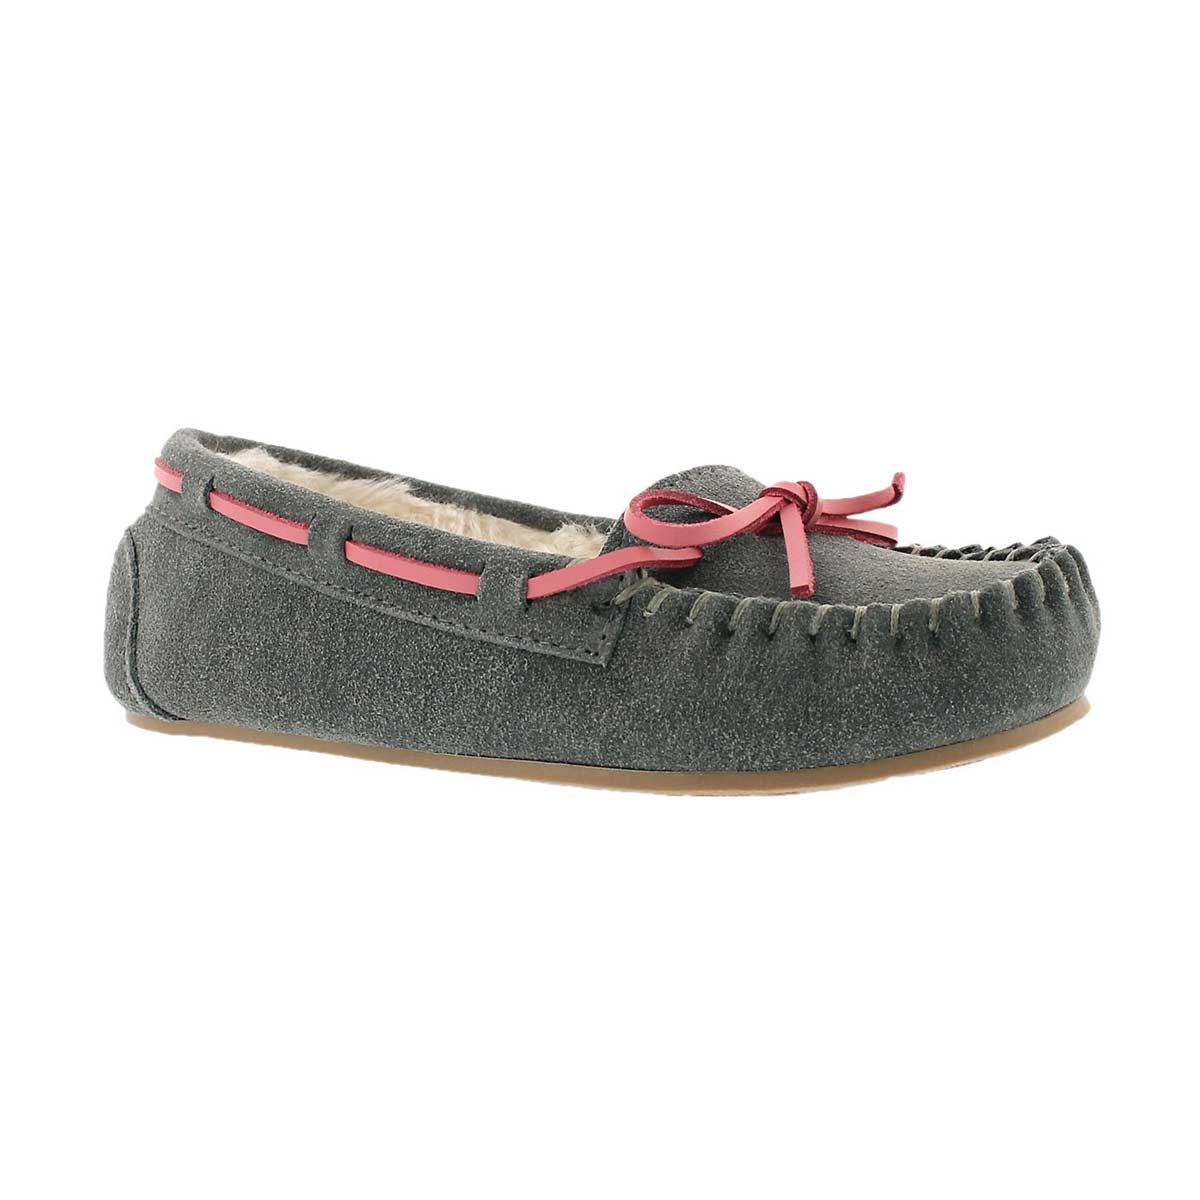 Girls' CADY 2 grey ballerina moccasins